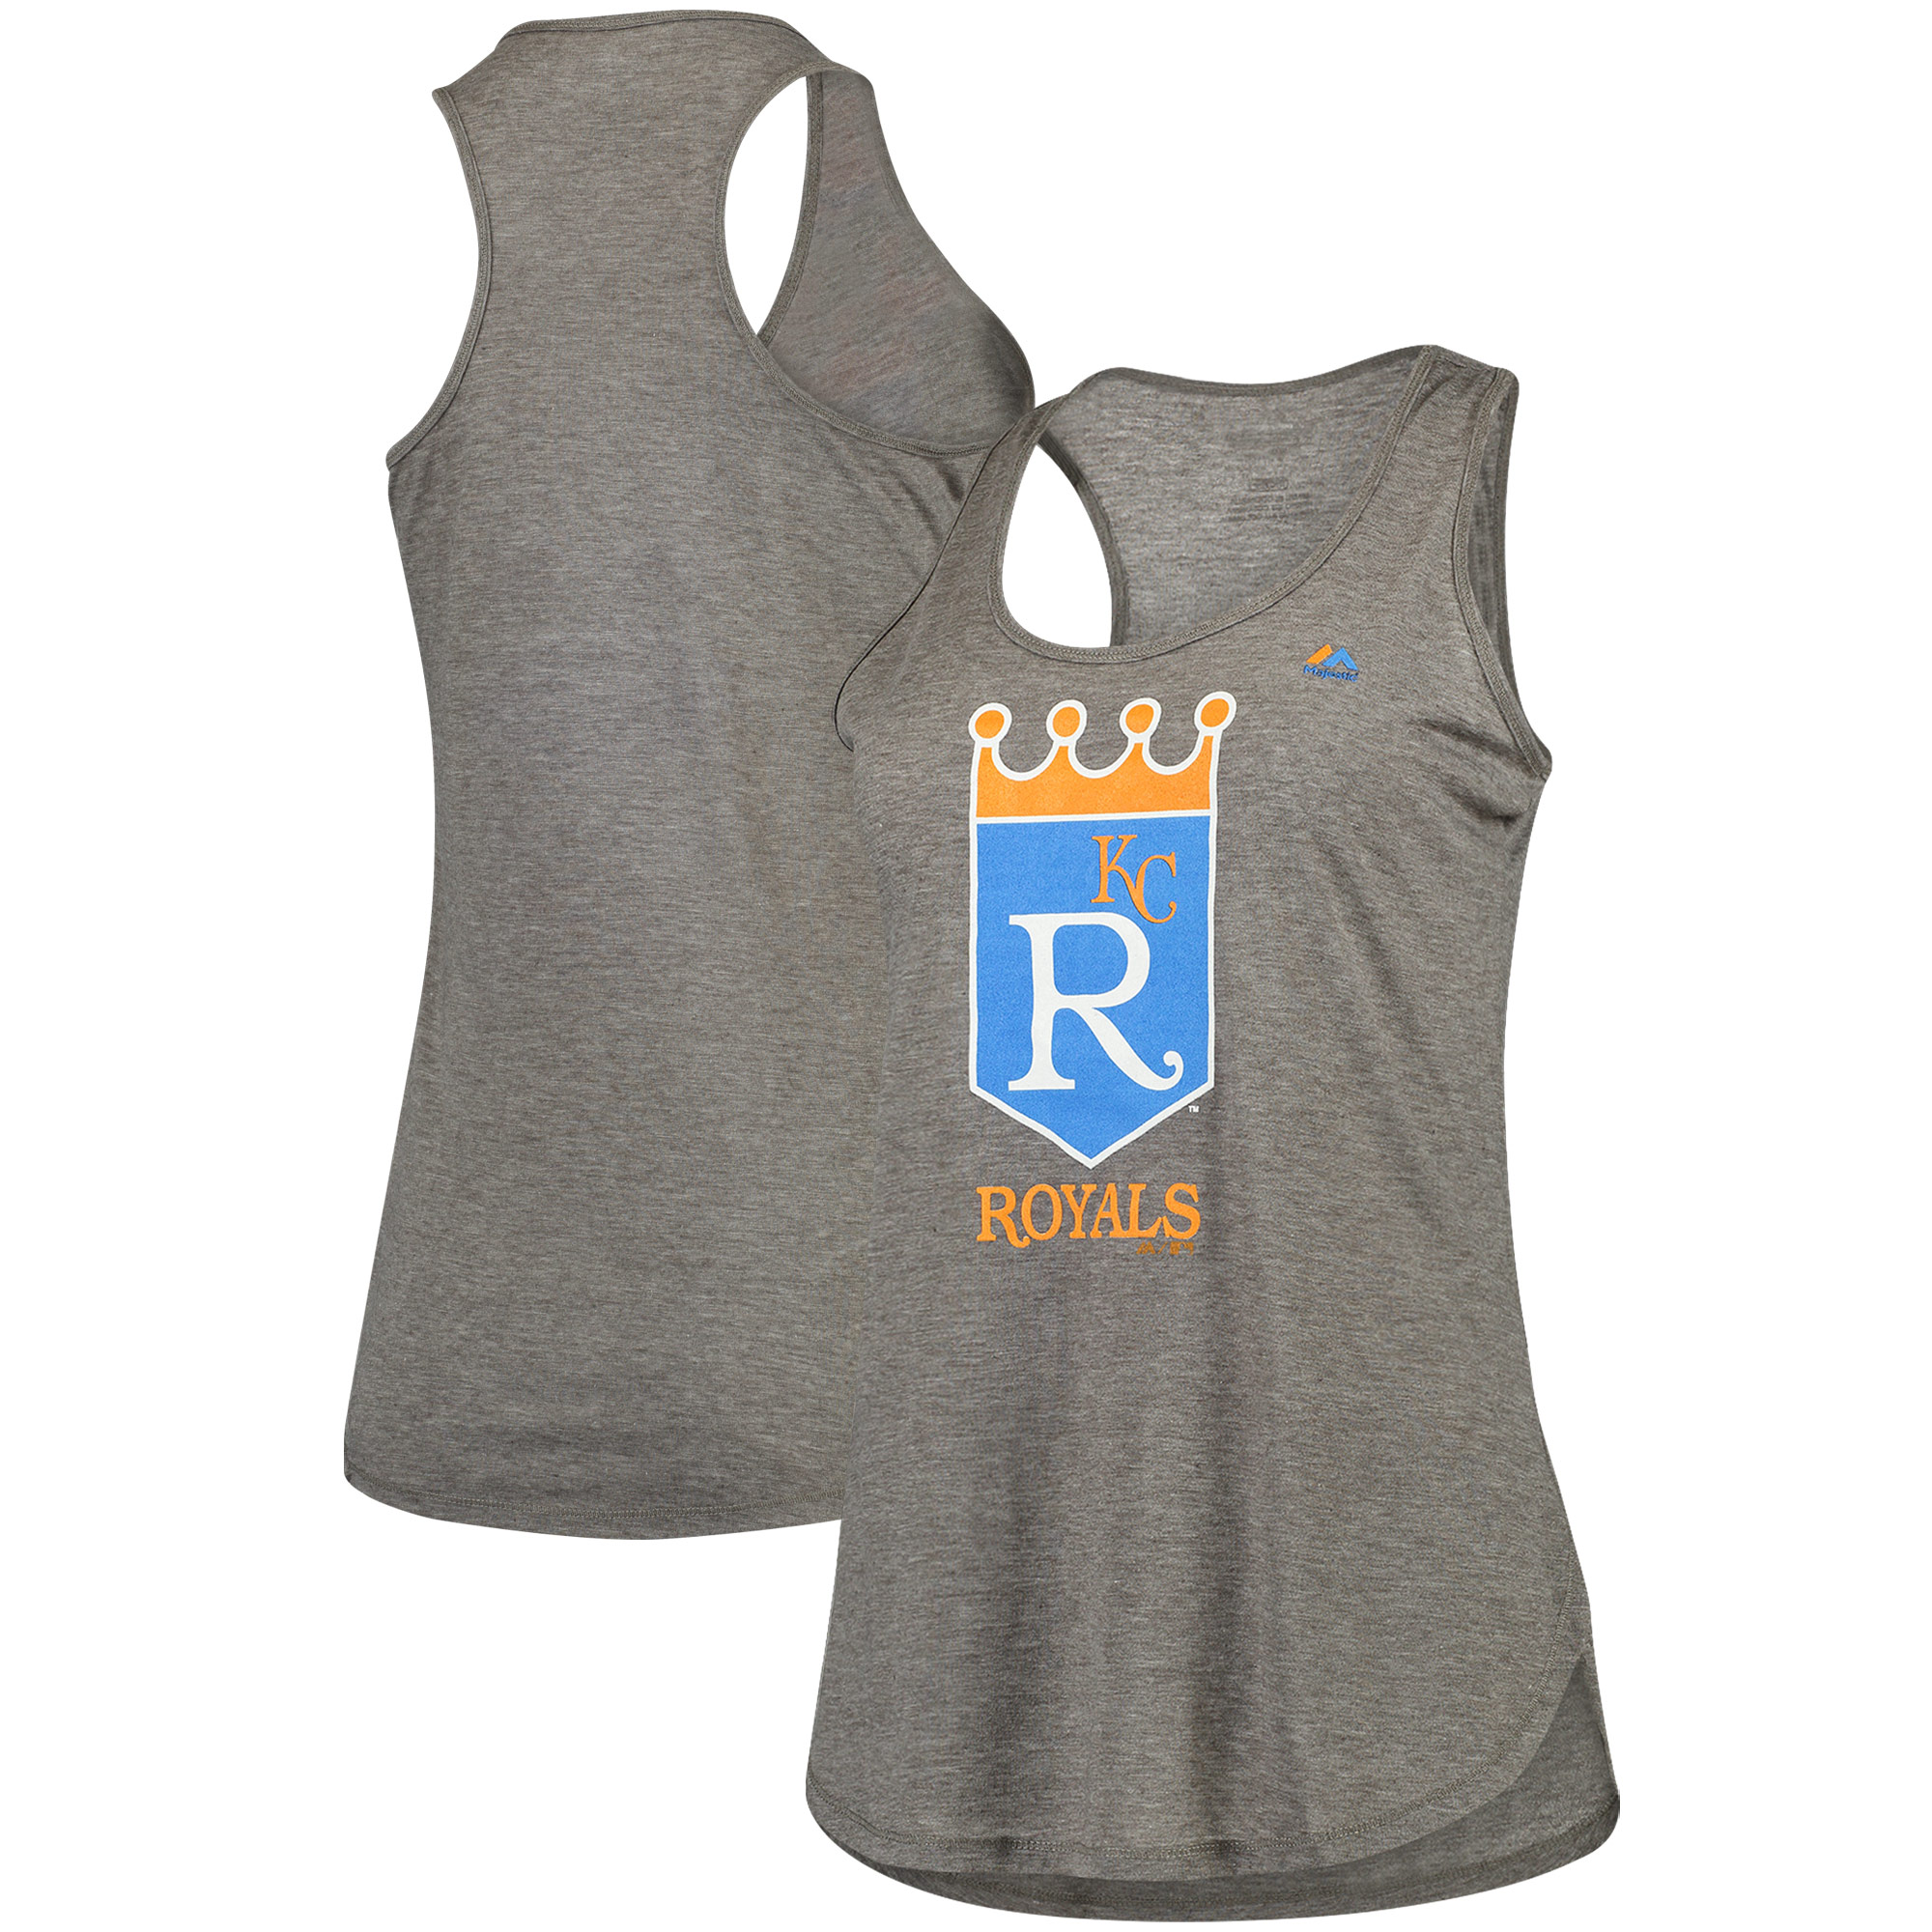 Kansas City Royals Majestic Women's Tested Cooperstown Collection Racerback Tank Top - Gray